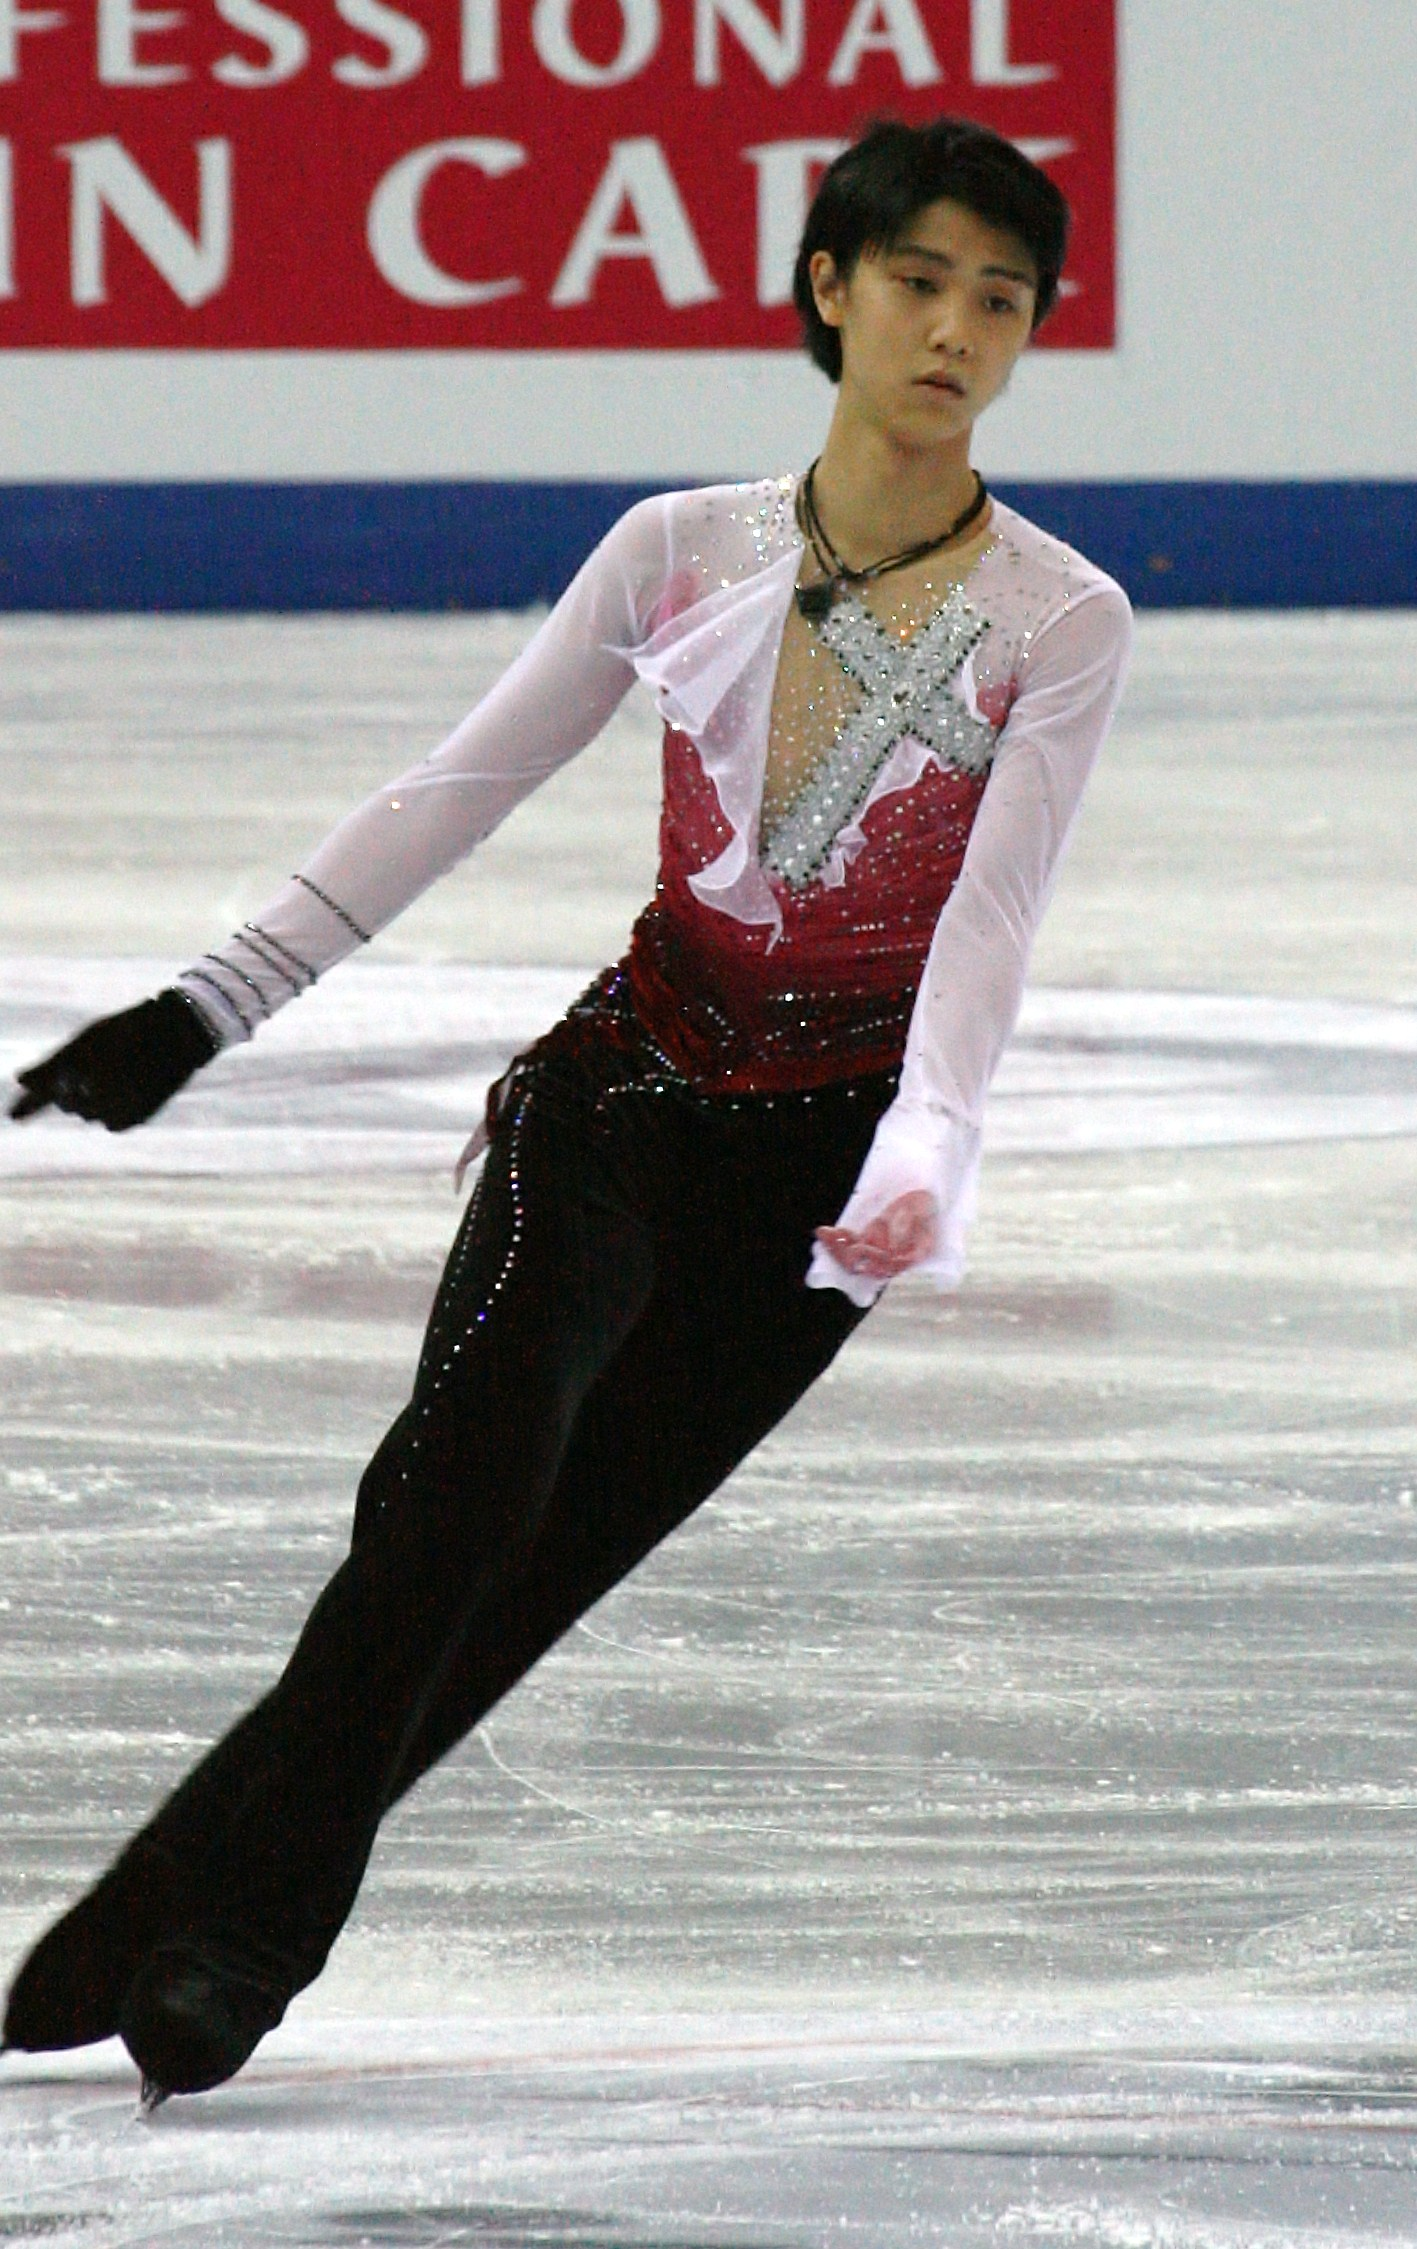 http://upload.wikimedia.org/wikipedia/commons/4/4b/2012-12_Final_Grand_Prix_3d_559_Yuzuru_Hanyu.JPG